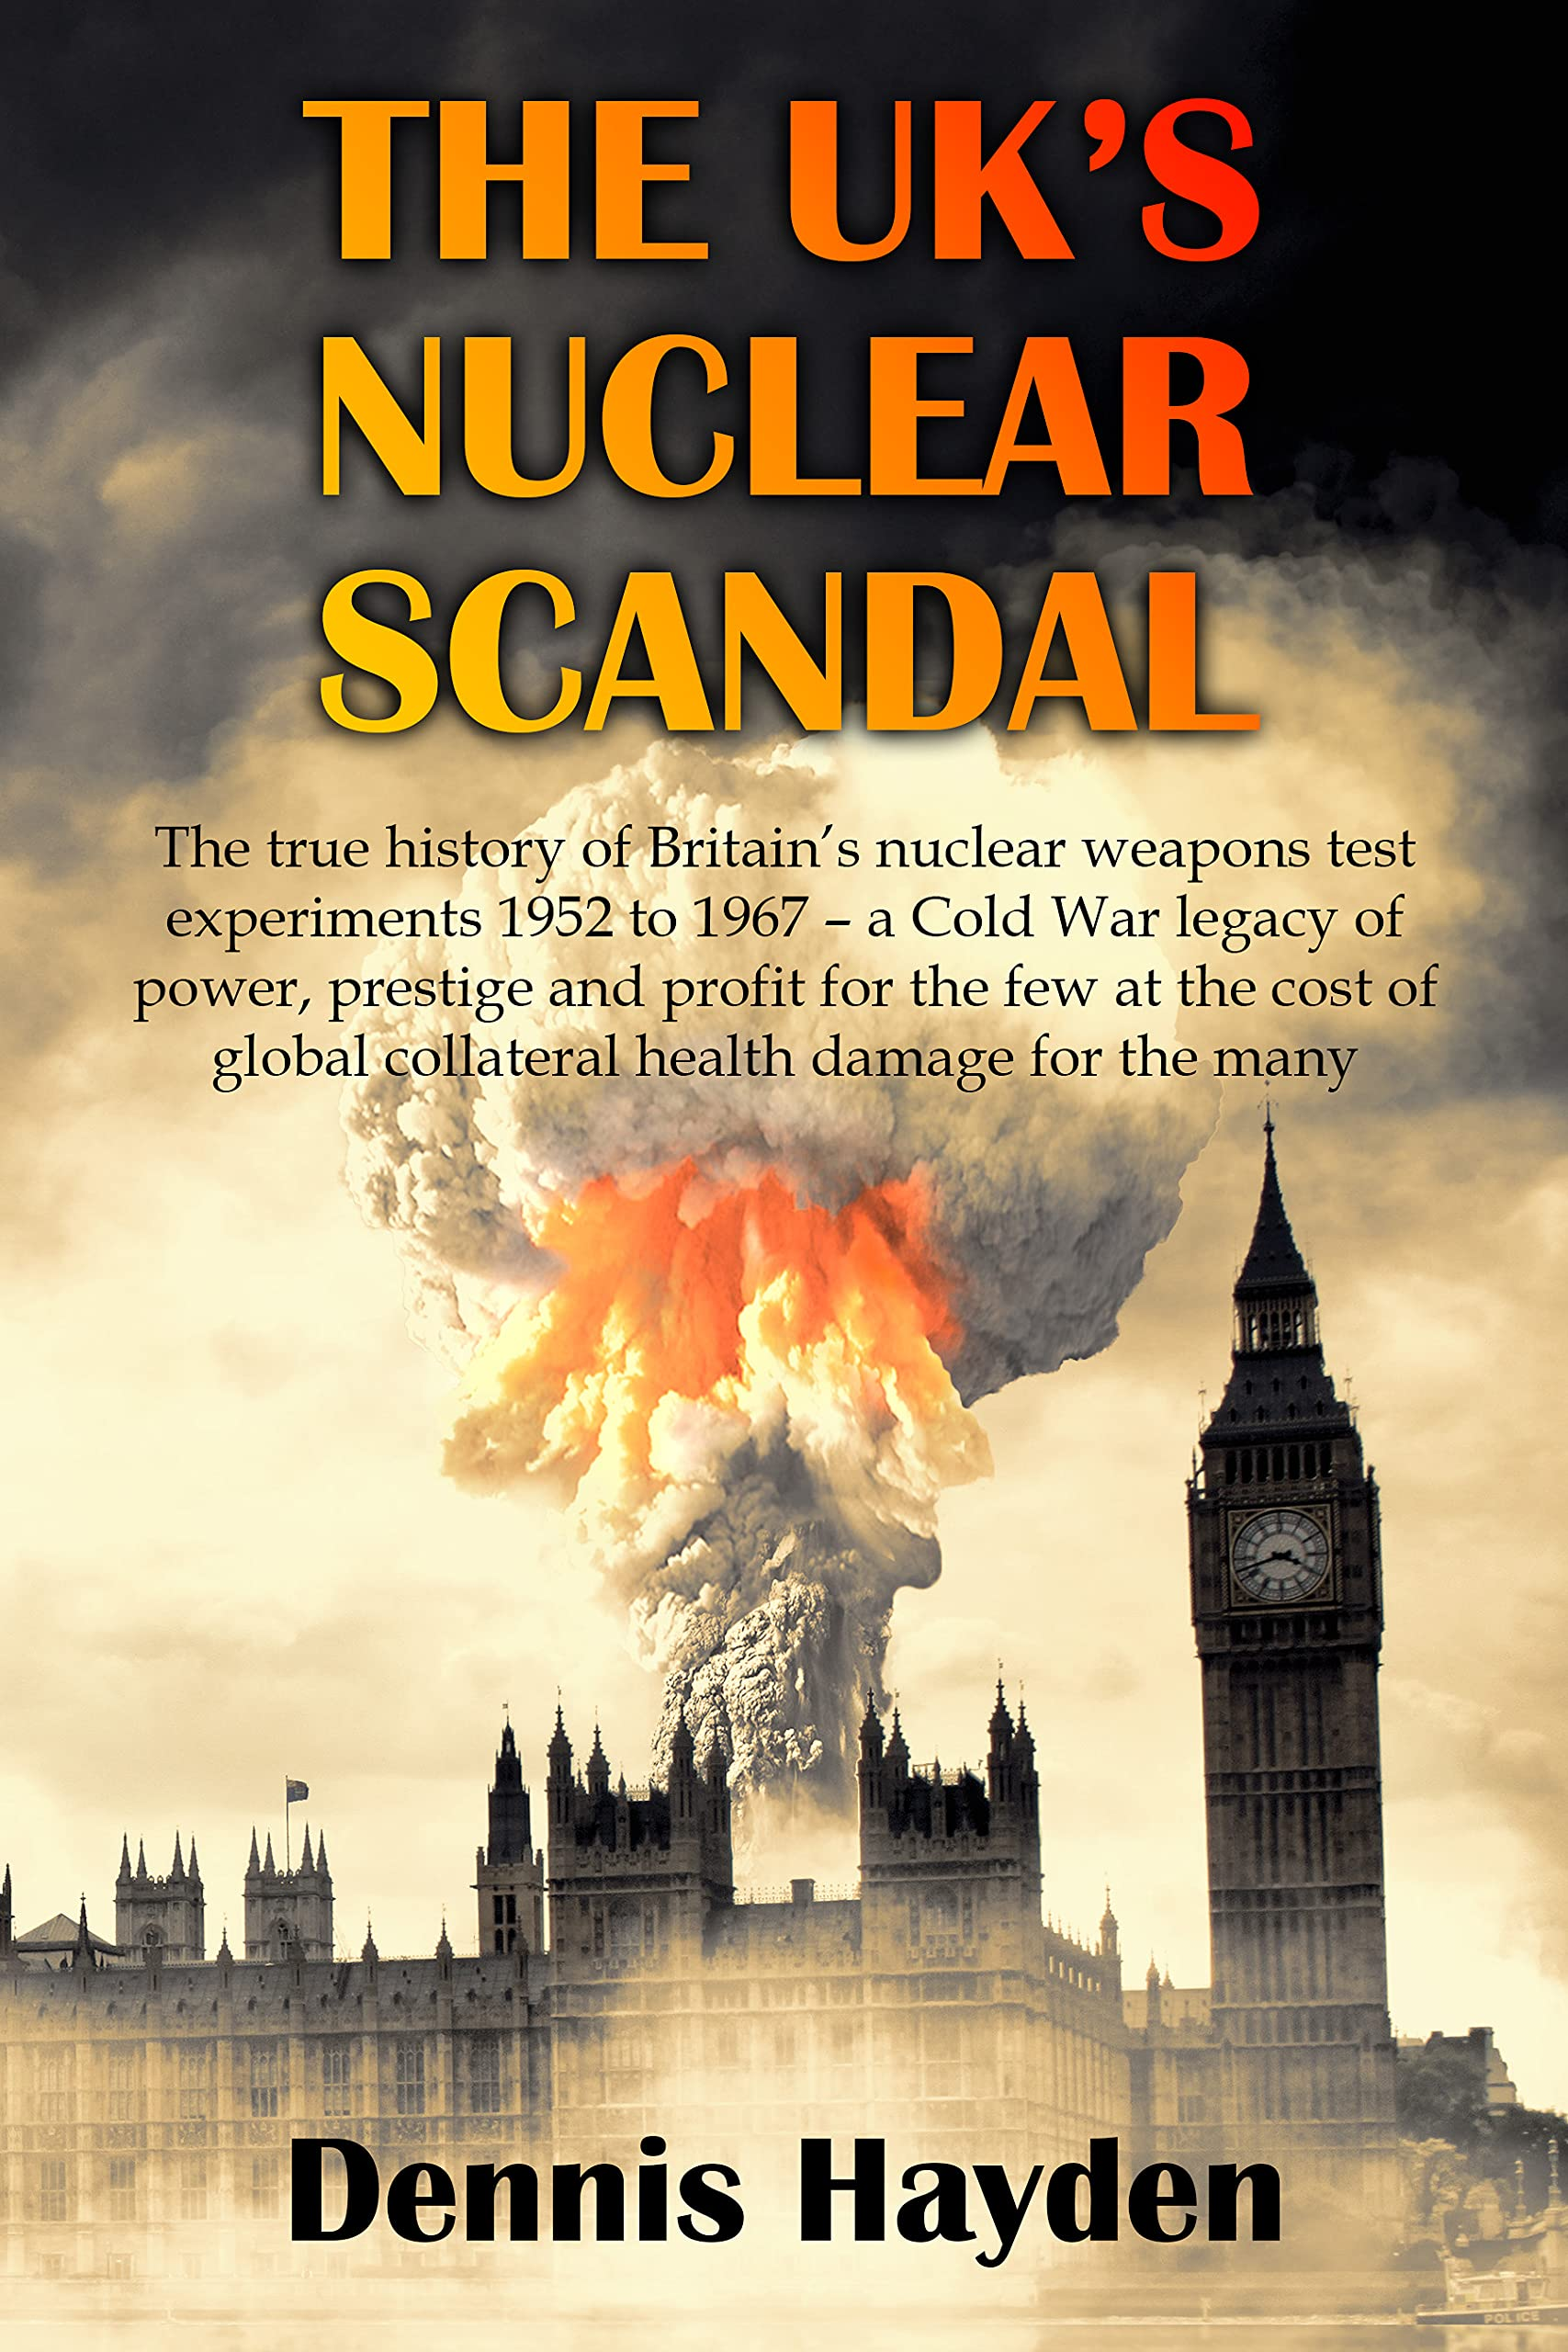 The UK's Nuclear Scandal: The true history of Britain's nuclear weapons test experiments 1952 to 1967– a Cold War legacy of power, prestige and profit for the few at the cost of the health of many